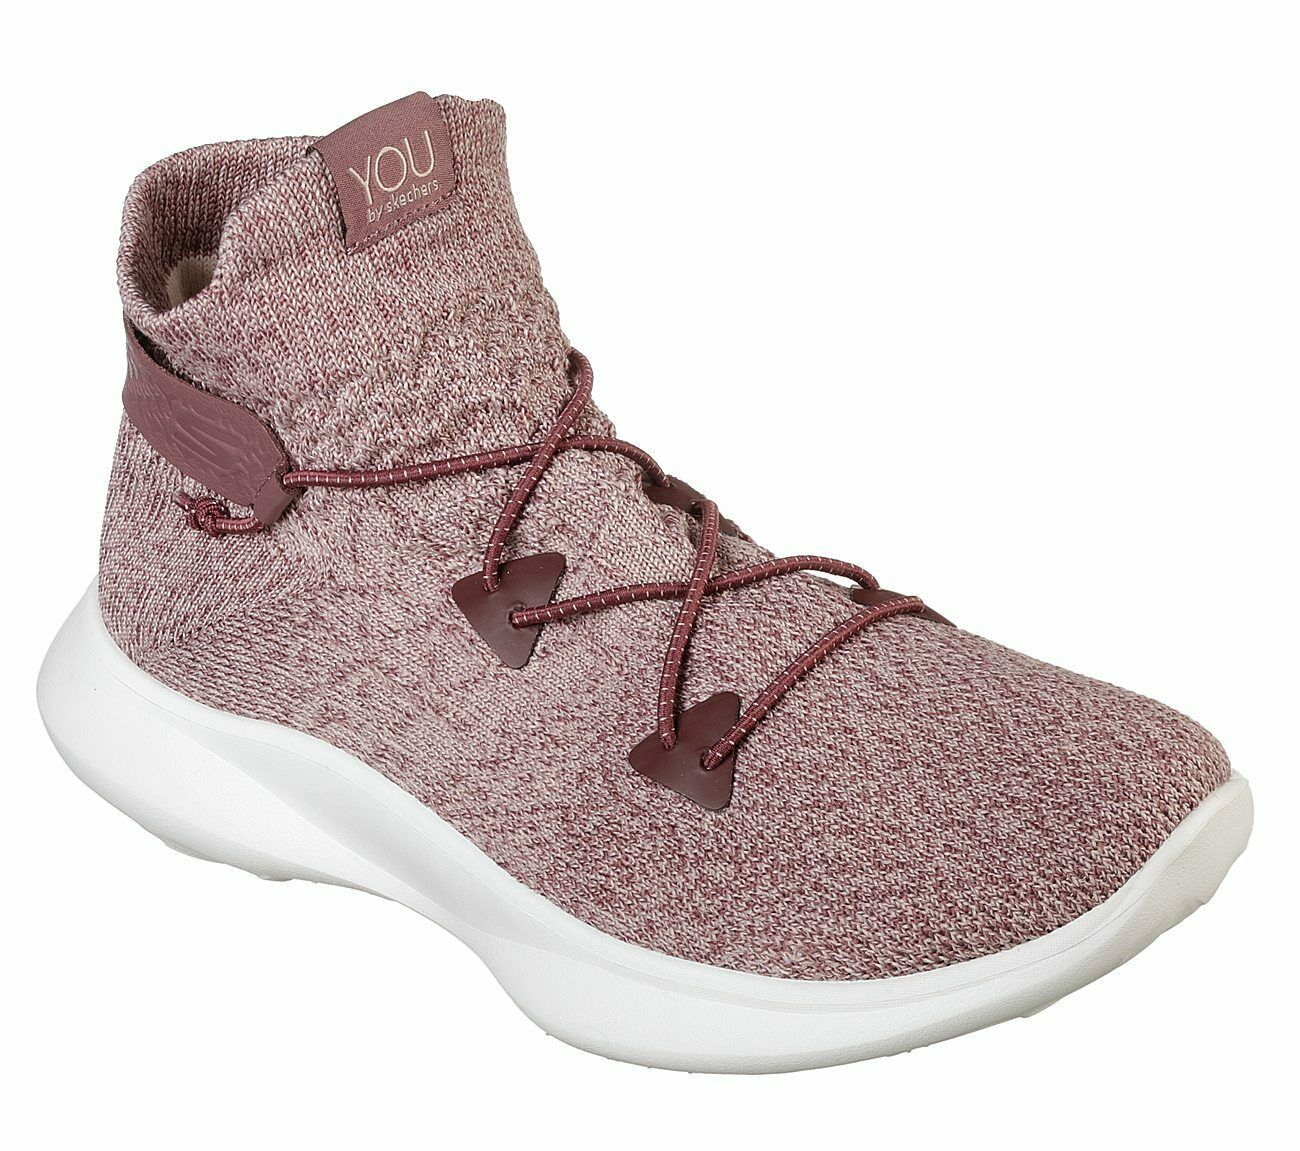 Primary image for SKECHERS YOU WOMEN'S SERENE ADORNED SNEAKER MAUVE 6 M US